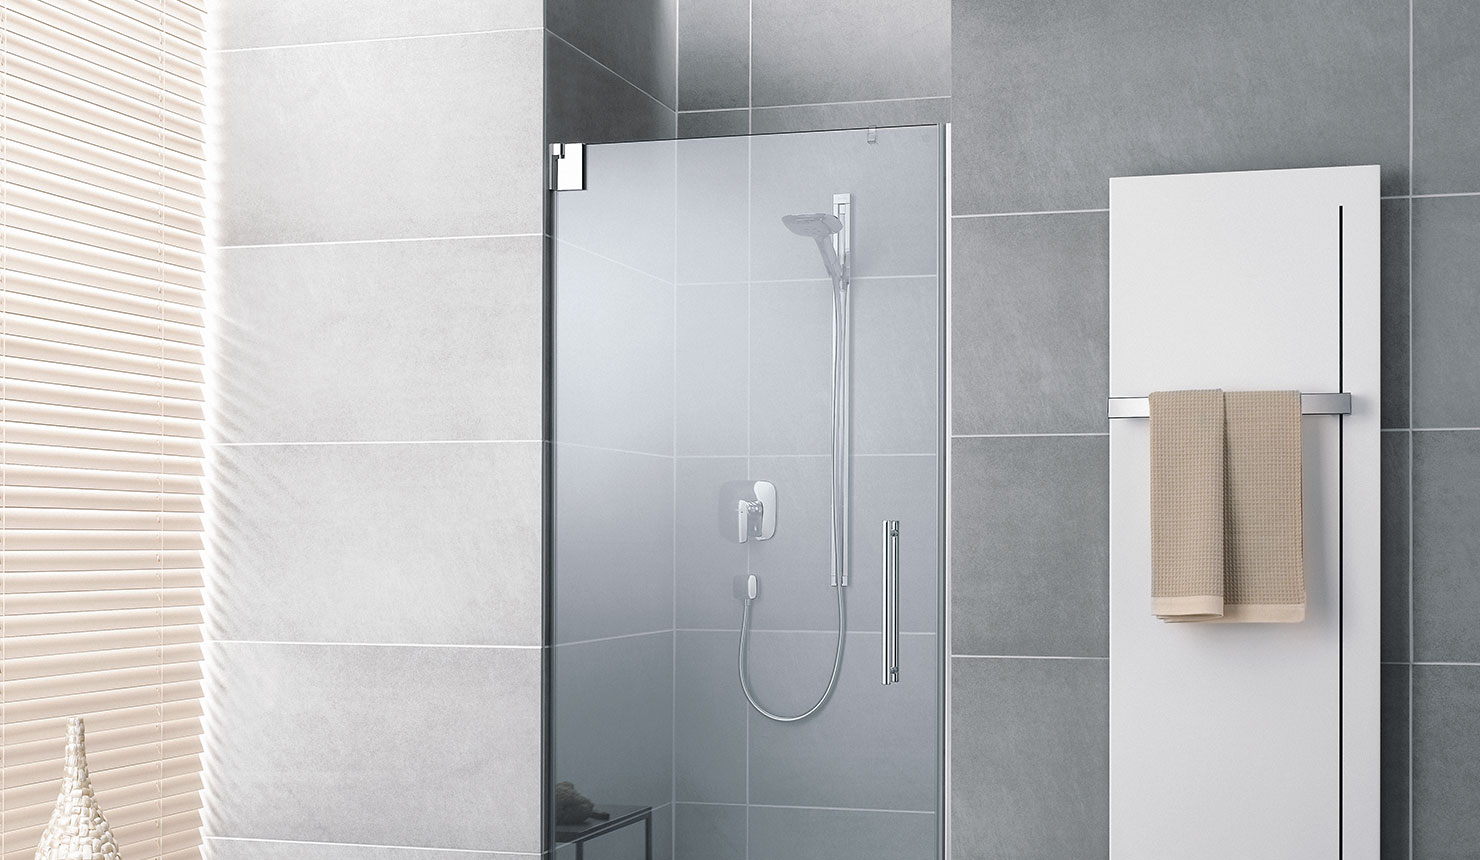 Kermi shower enclosure Pasa